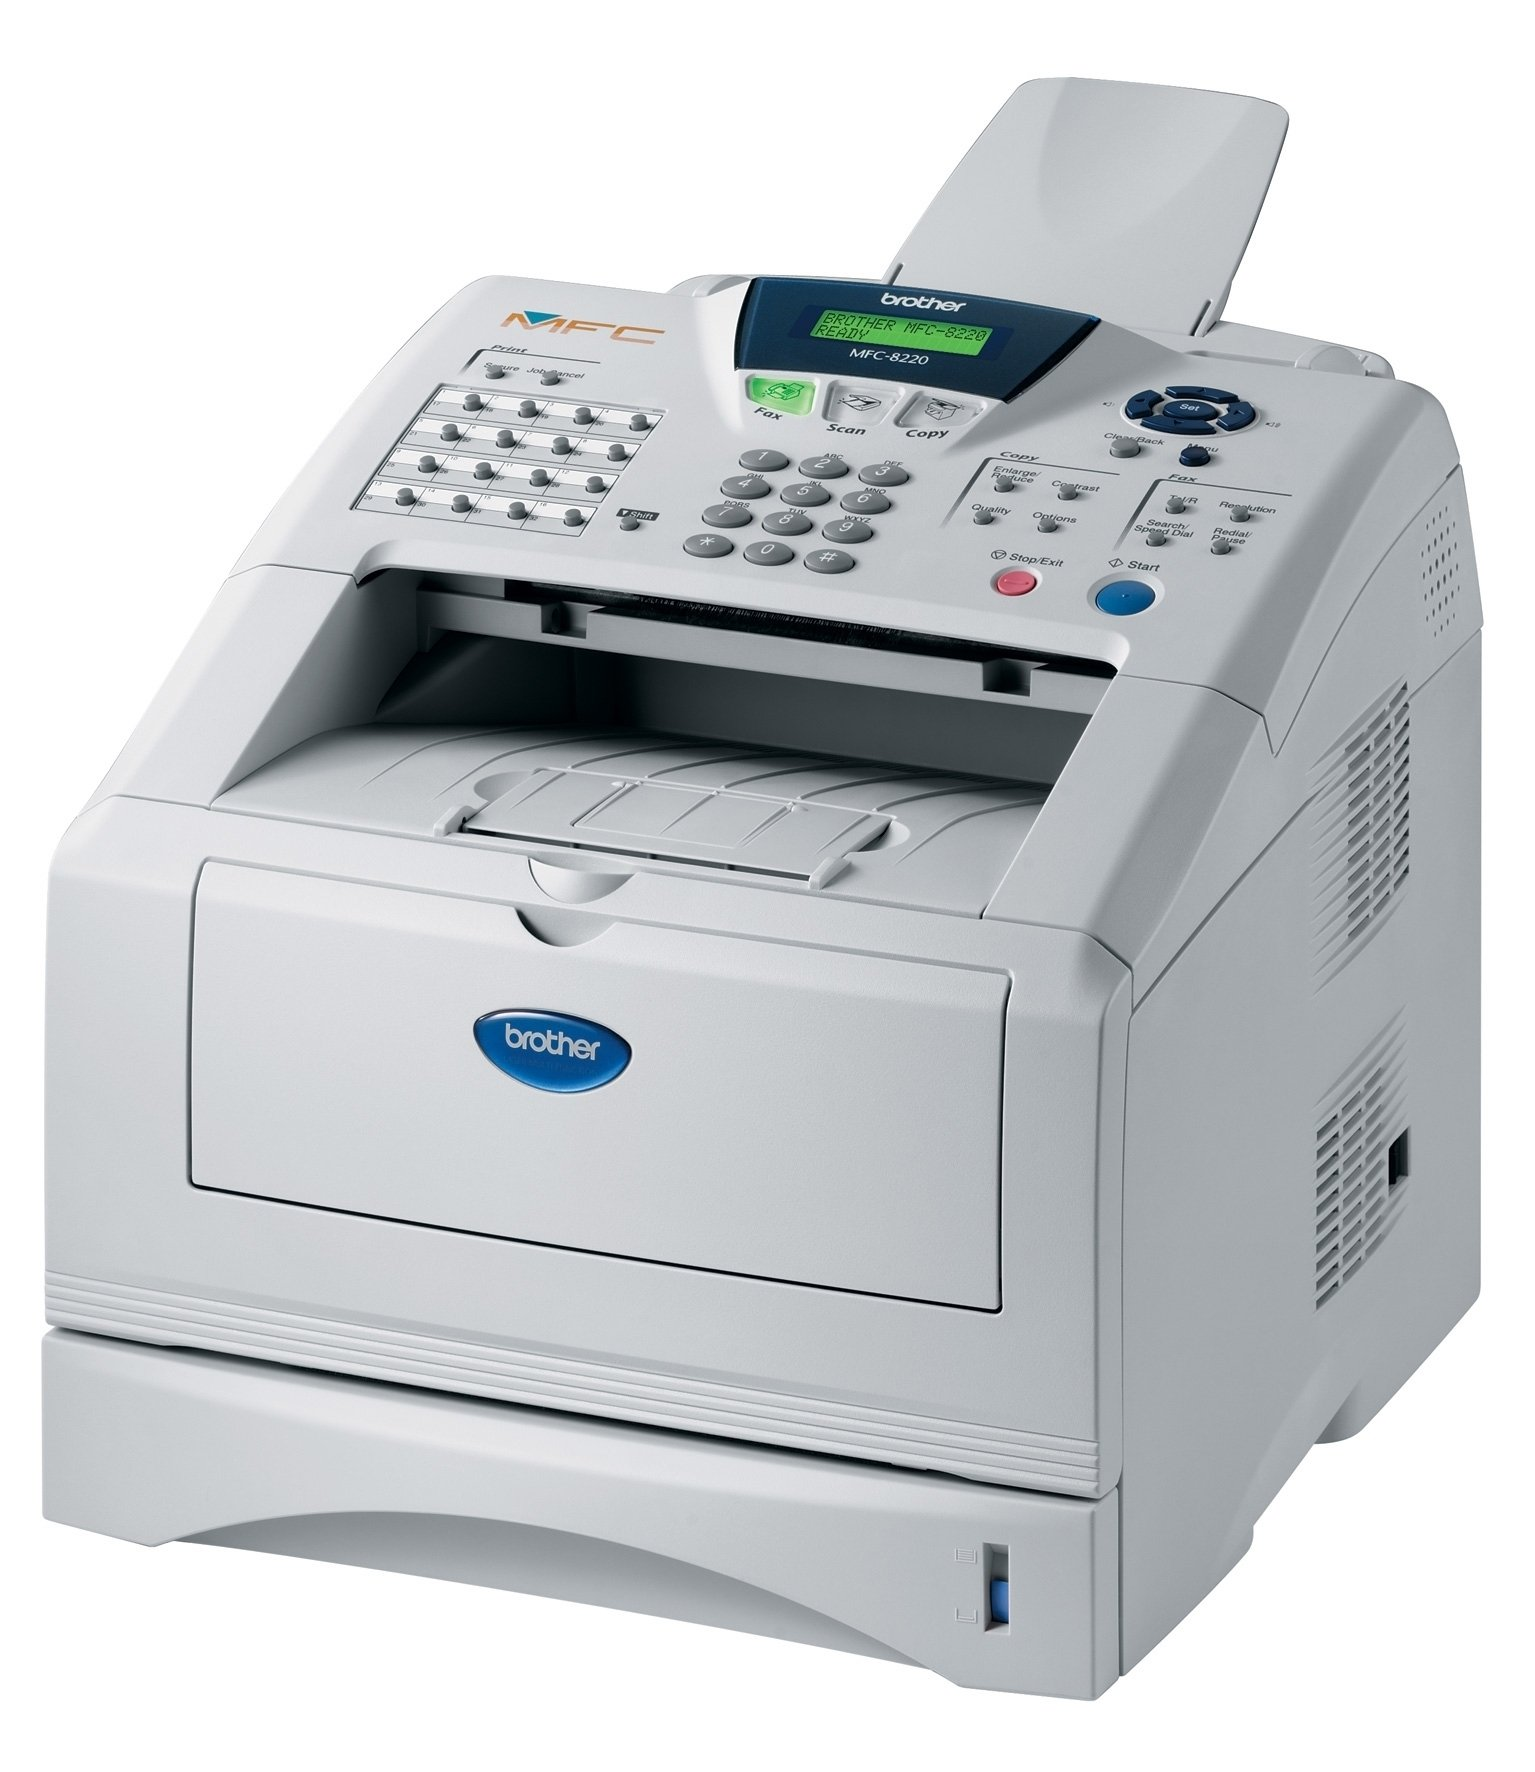 BRTMFC8220 - MFC-8220 Plain Paper Laser Fax/Printer/Scanner/Copier/PC Fax/Telephone